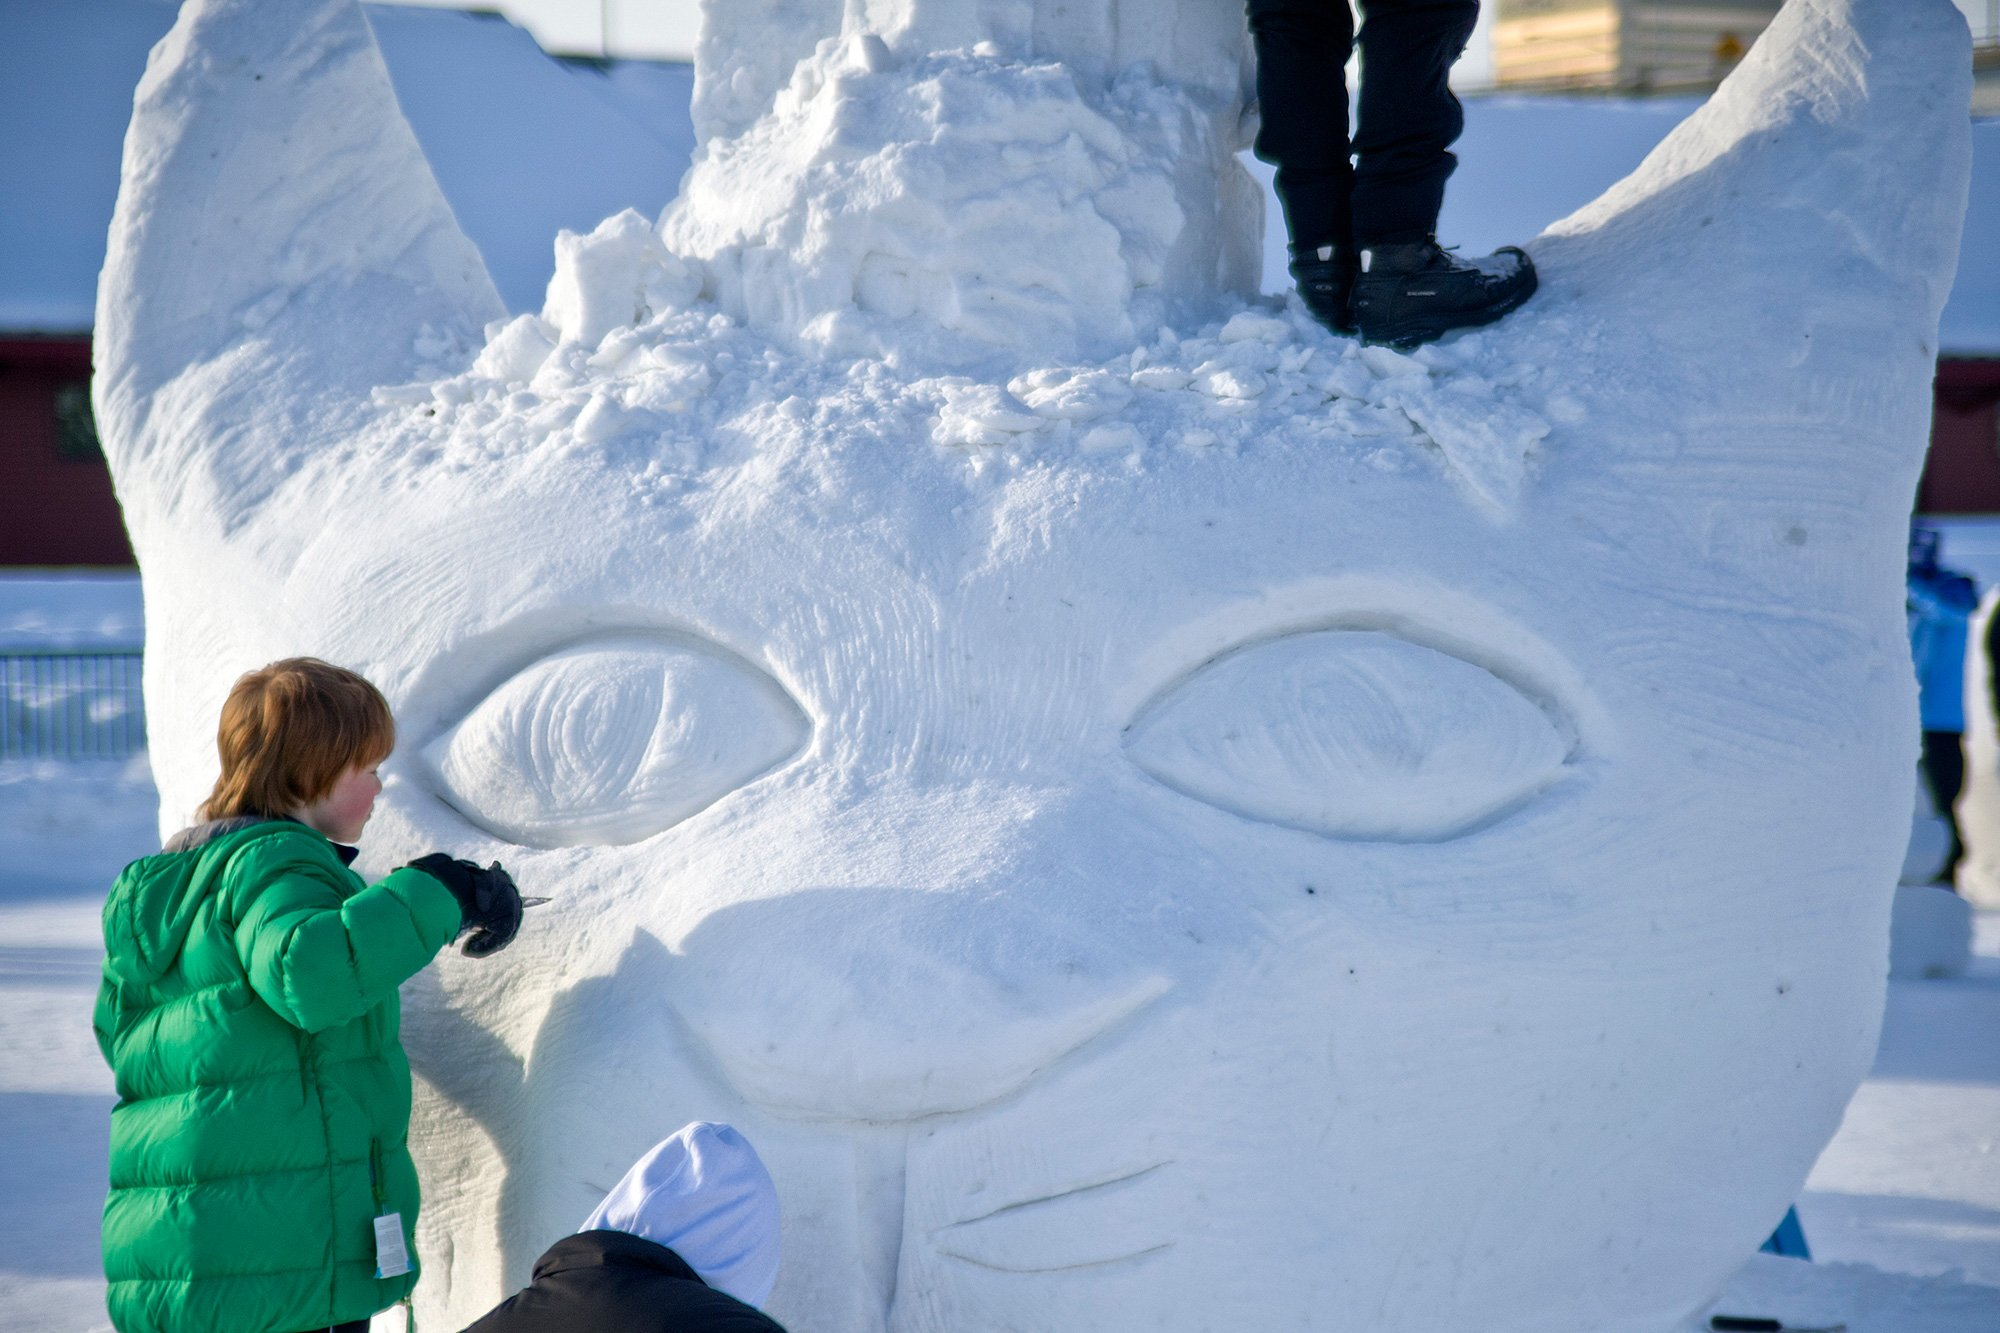 child carving snow sculpture